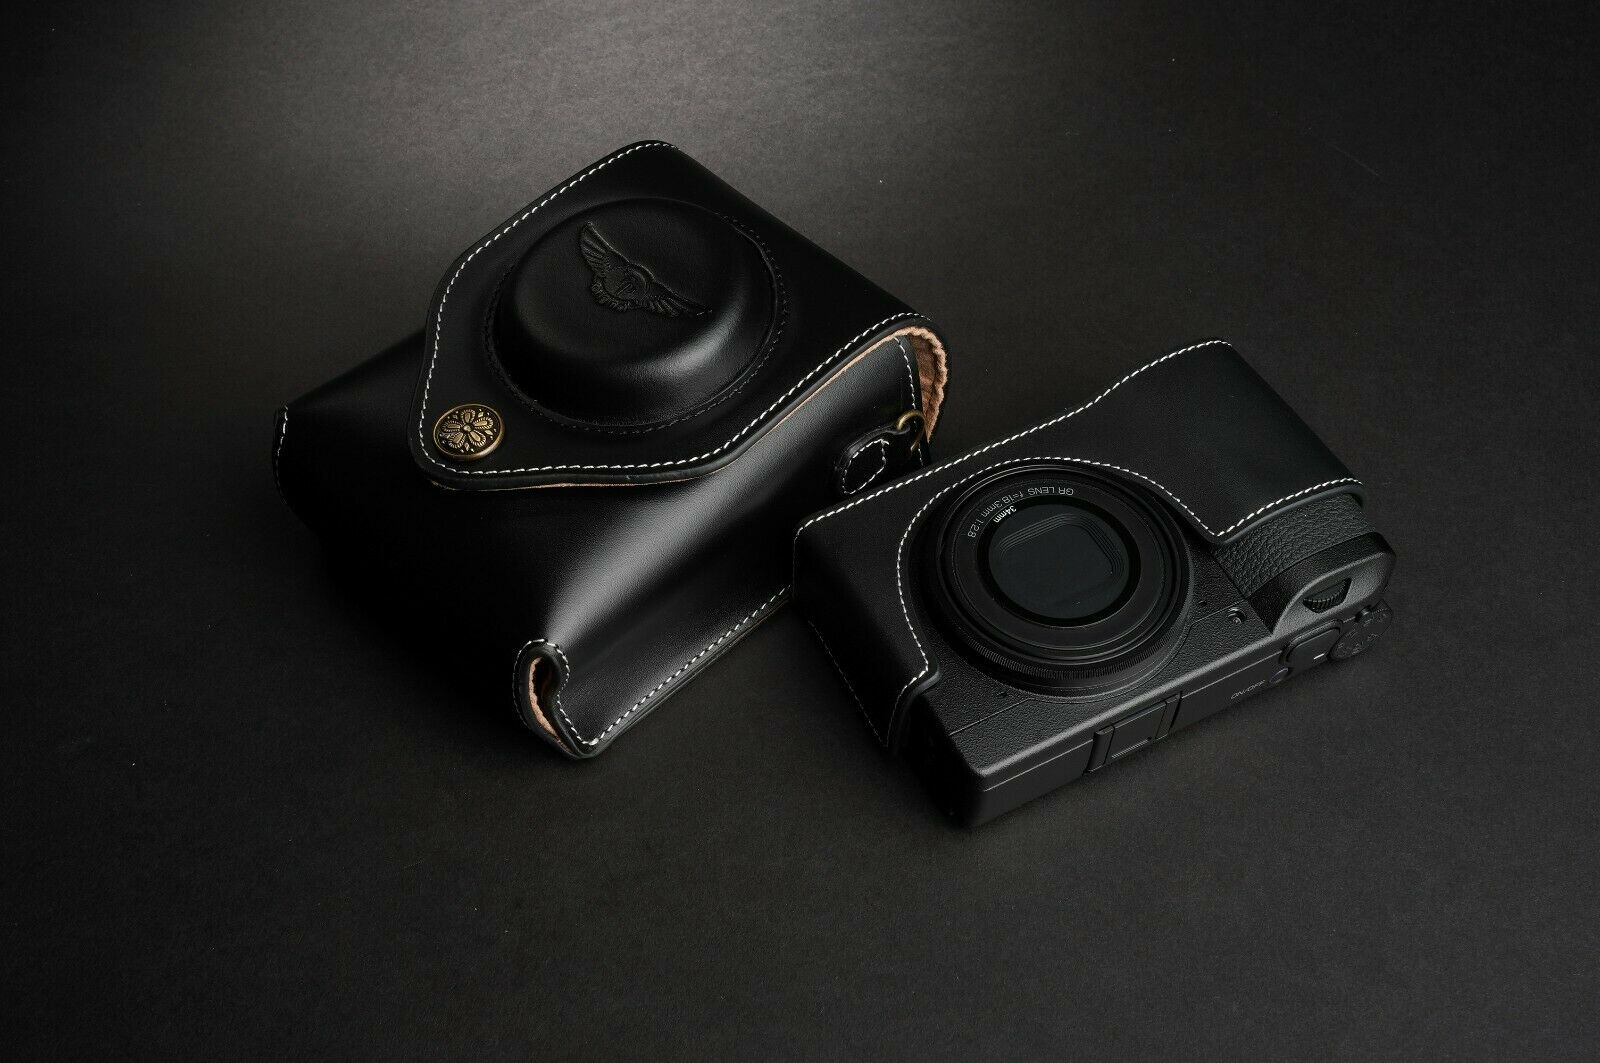 New Ricoh GR III camera accessories (cases, grips and thumb